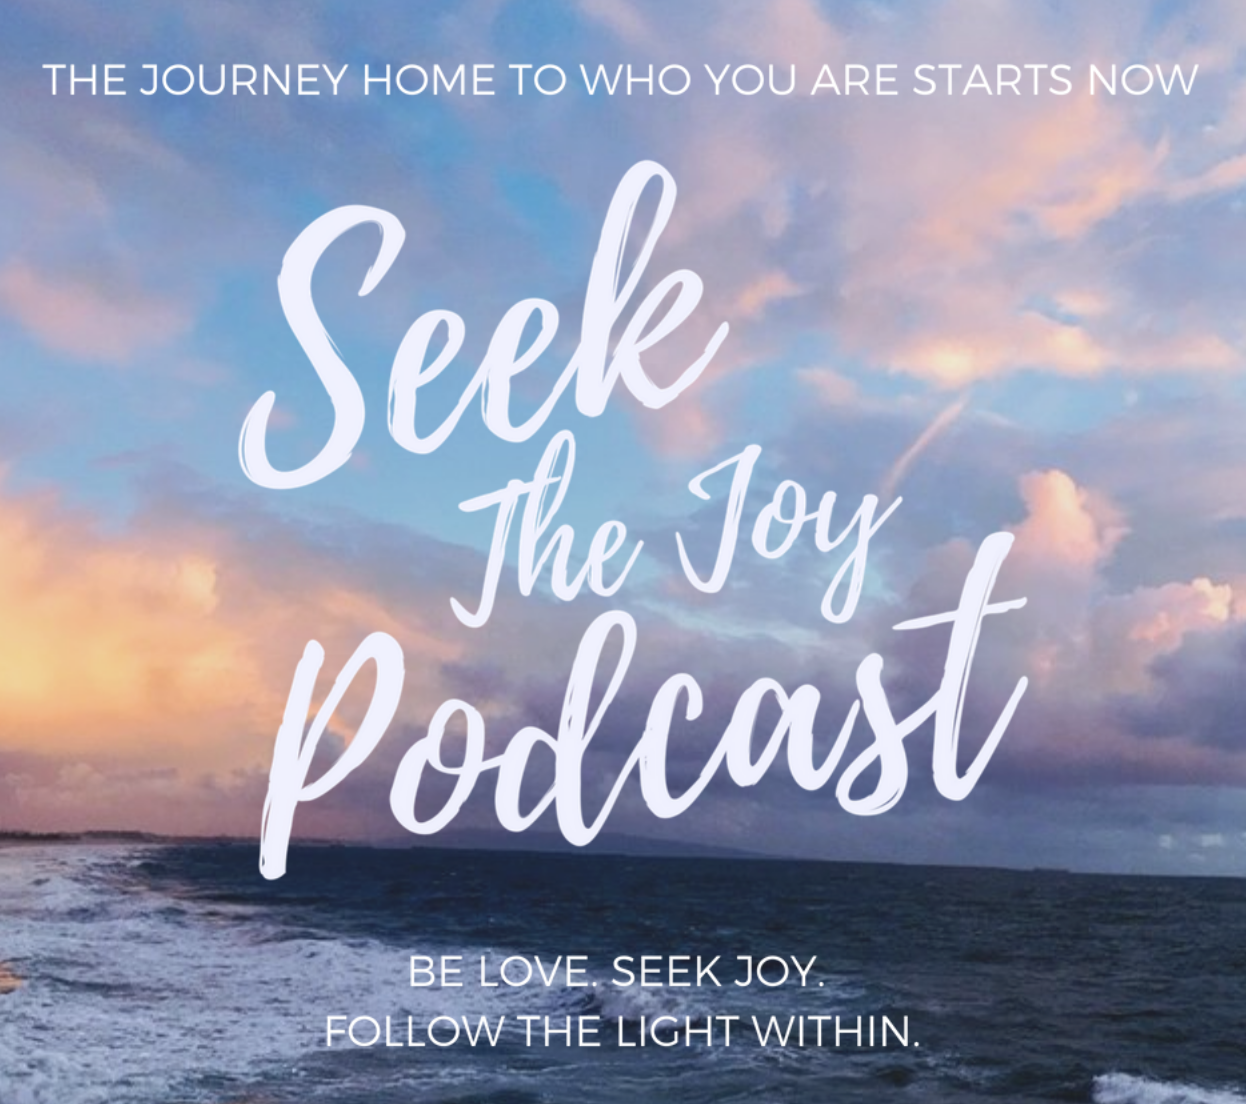 Featured onSeek The Joy Podcast - Sharing my own story in the best way I know how on Episode 5.Listen to the episode here